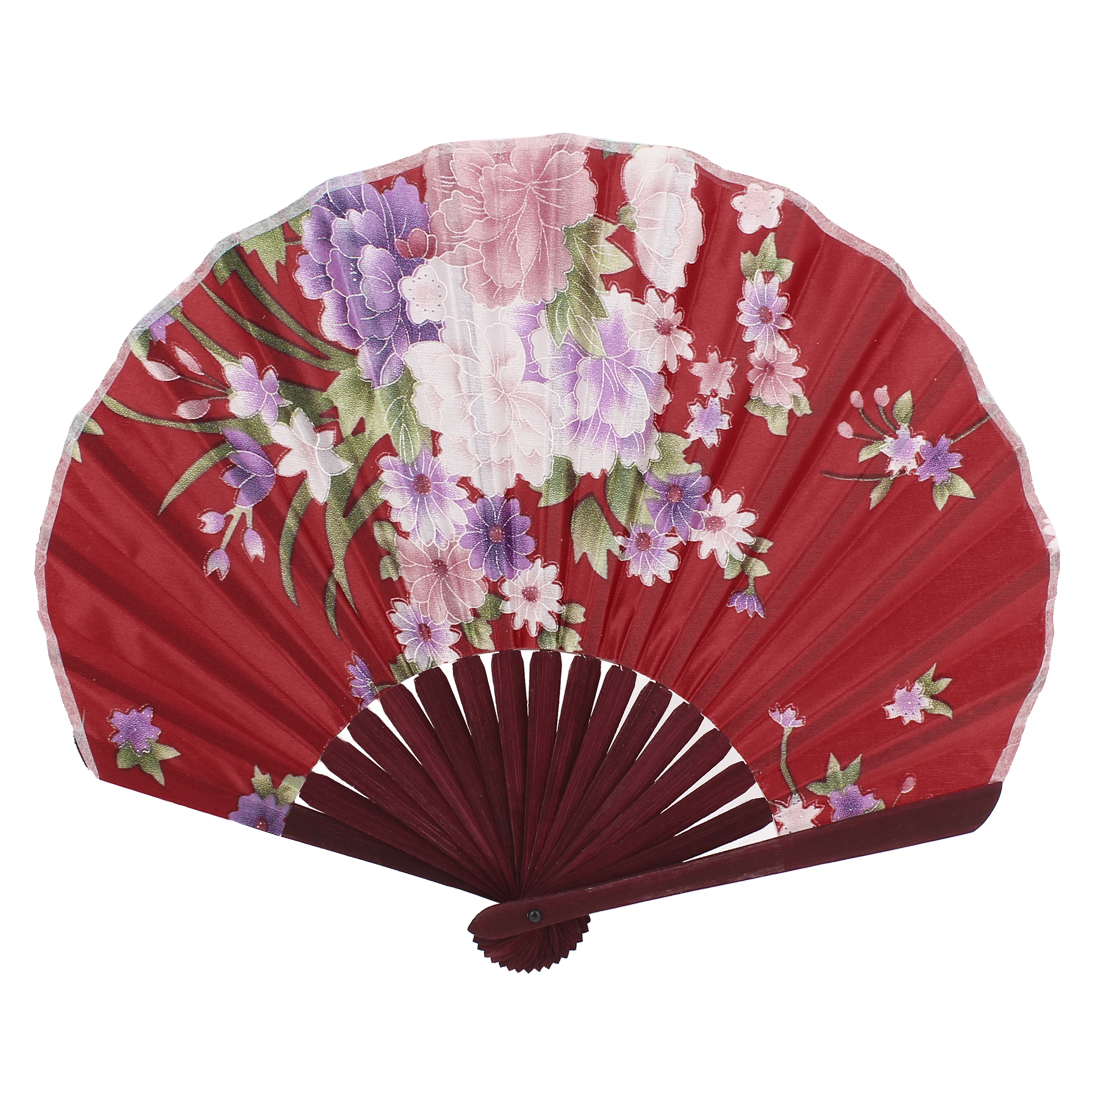 Seashell Shape Flower Print Chinese Style Wedding Party Folding Hand Fan Red